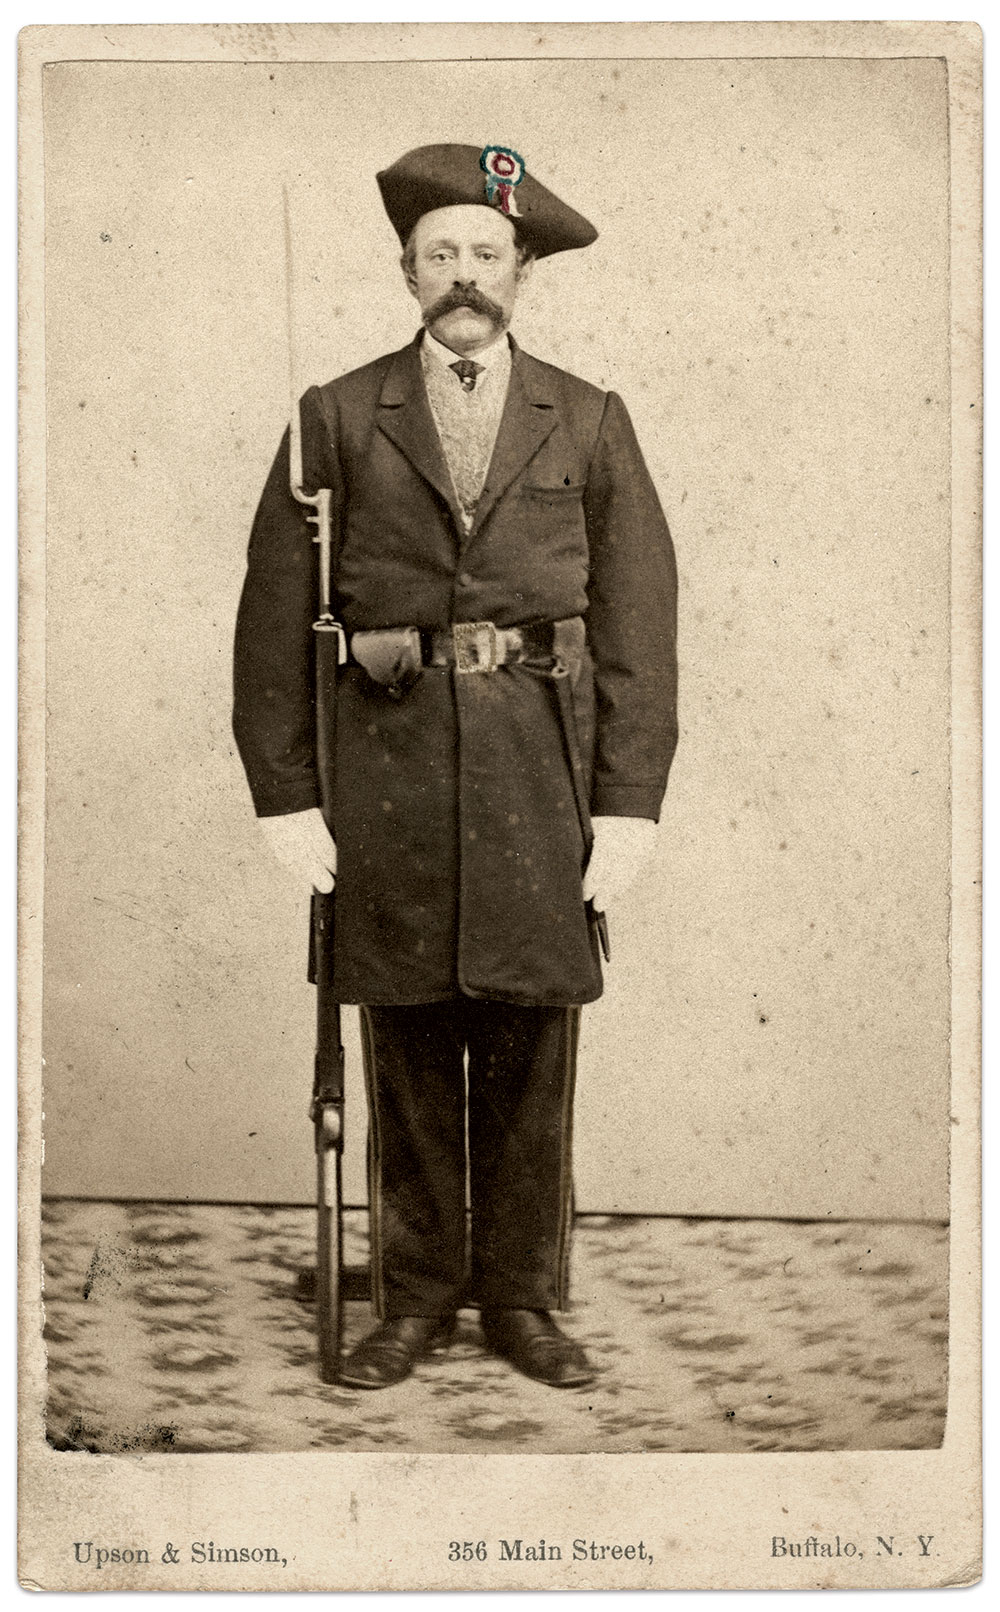 Carte de visite by Upson & Simson of Buffalo, N.Y. Ron Field Collection.